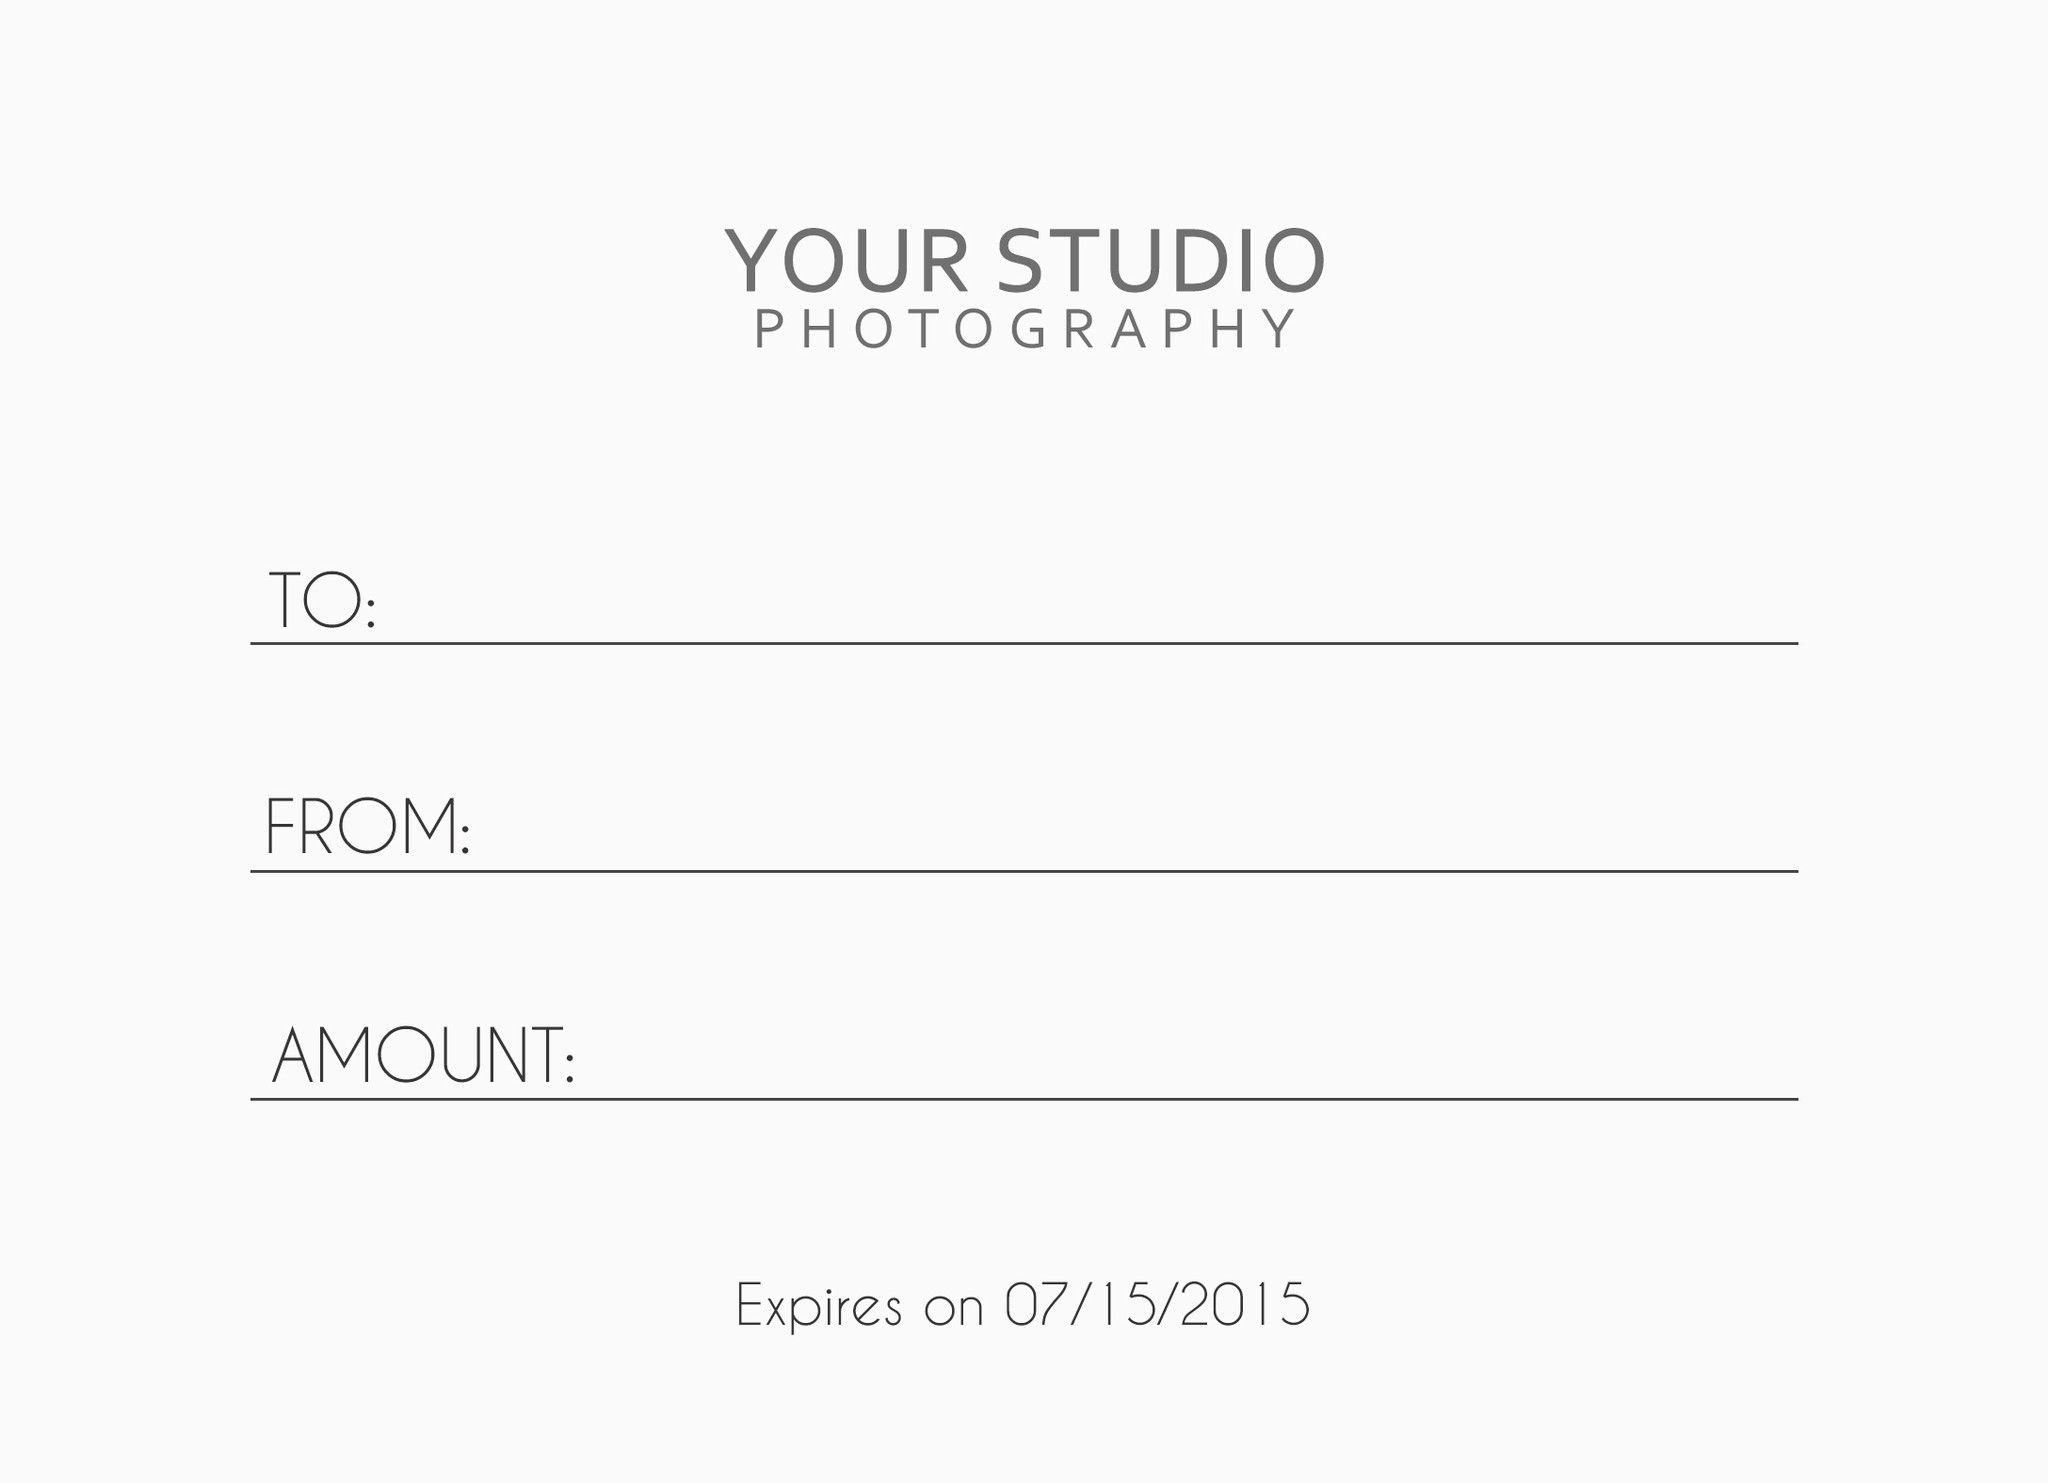 Photography gift certificate templates gallery templates example gift certificate template photoshop cs5 gallery certificate gift certificate template photoshop cs5 alramifo gallery yelopaper Image collections